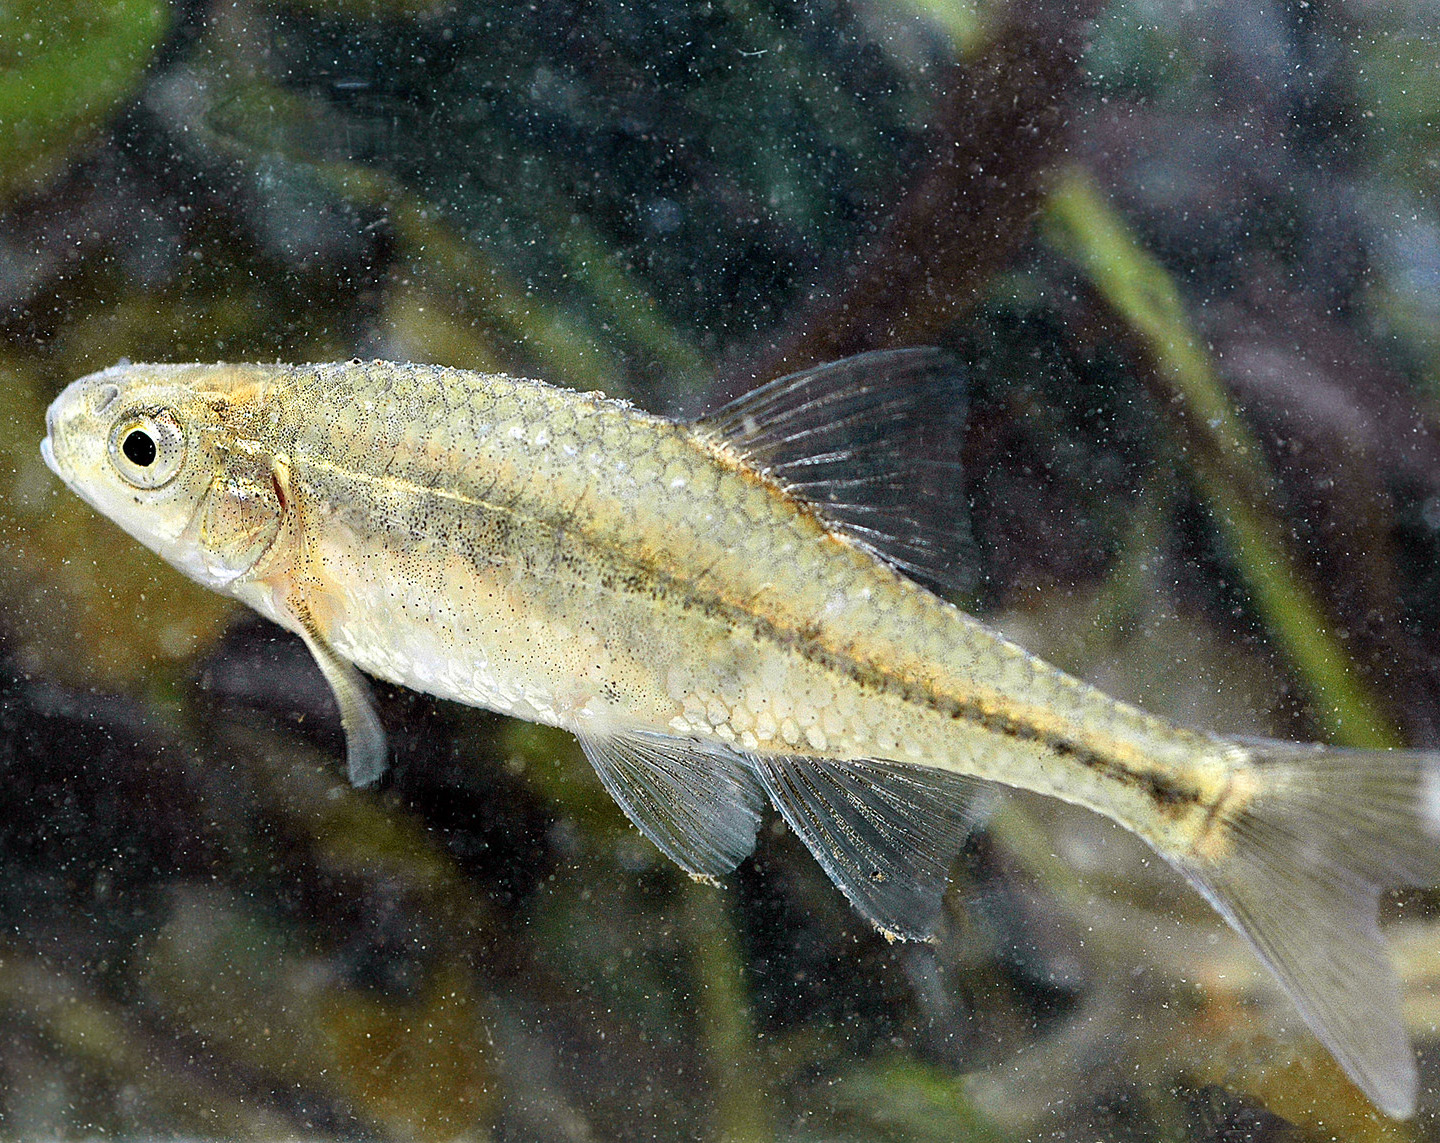 Freshwater fish diversity - Although Freshwater Fish Diversity Peaks In The Tropics The U S Nonetheless Hosts The